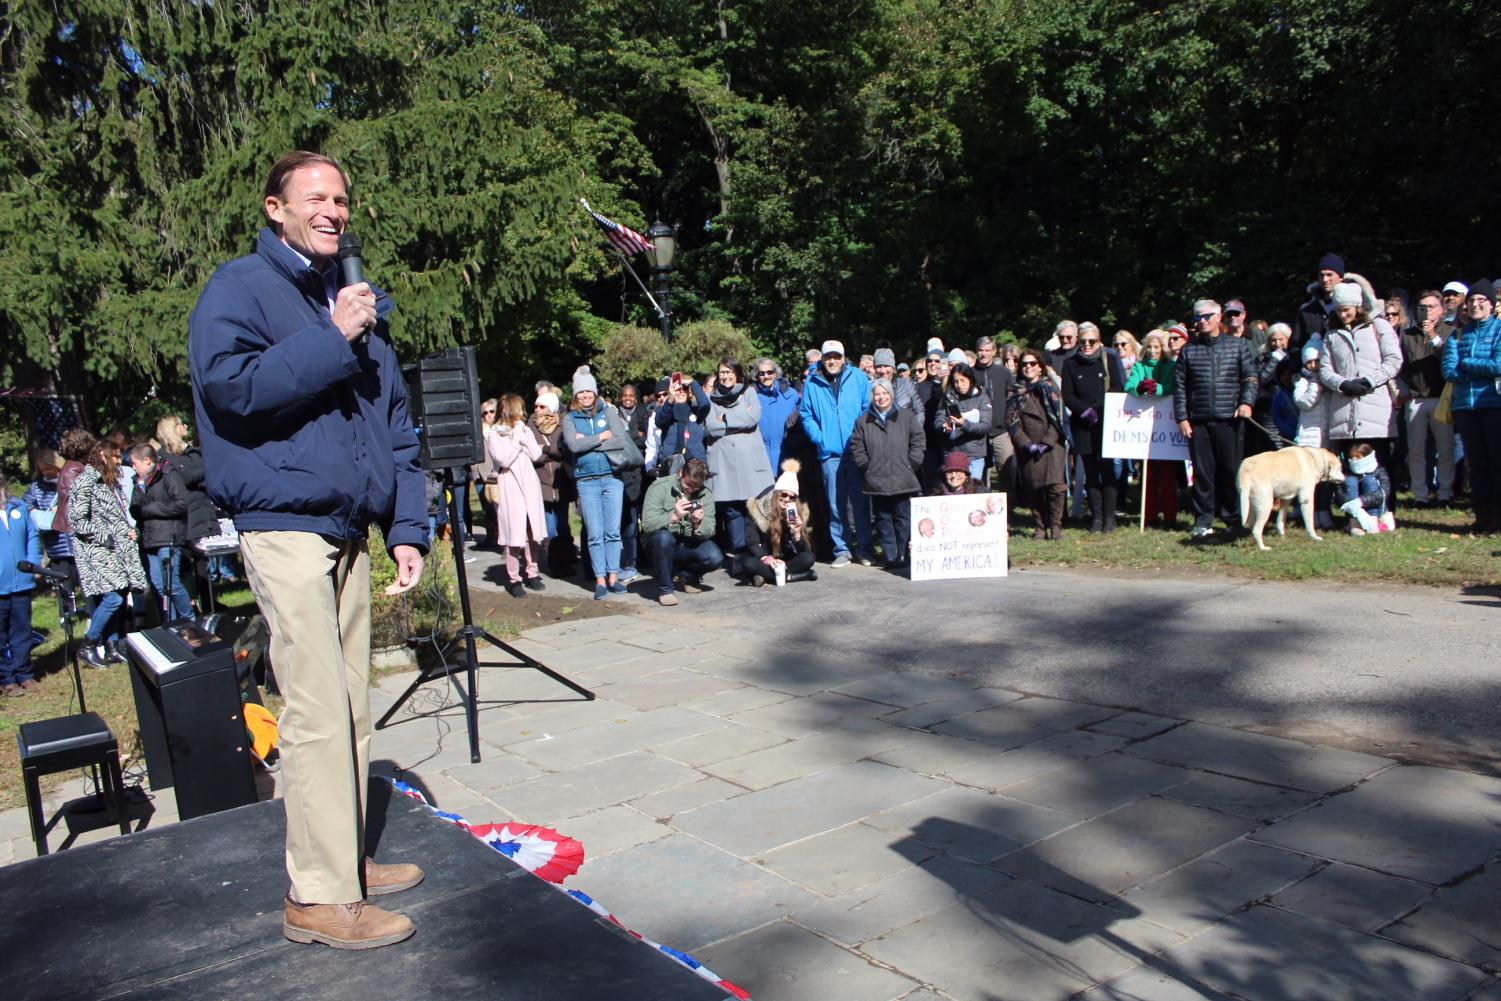 Senator Blumenthal speaking at the Darien Democrats rally.